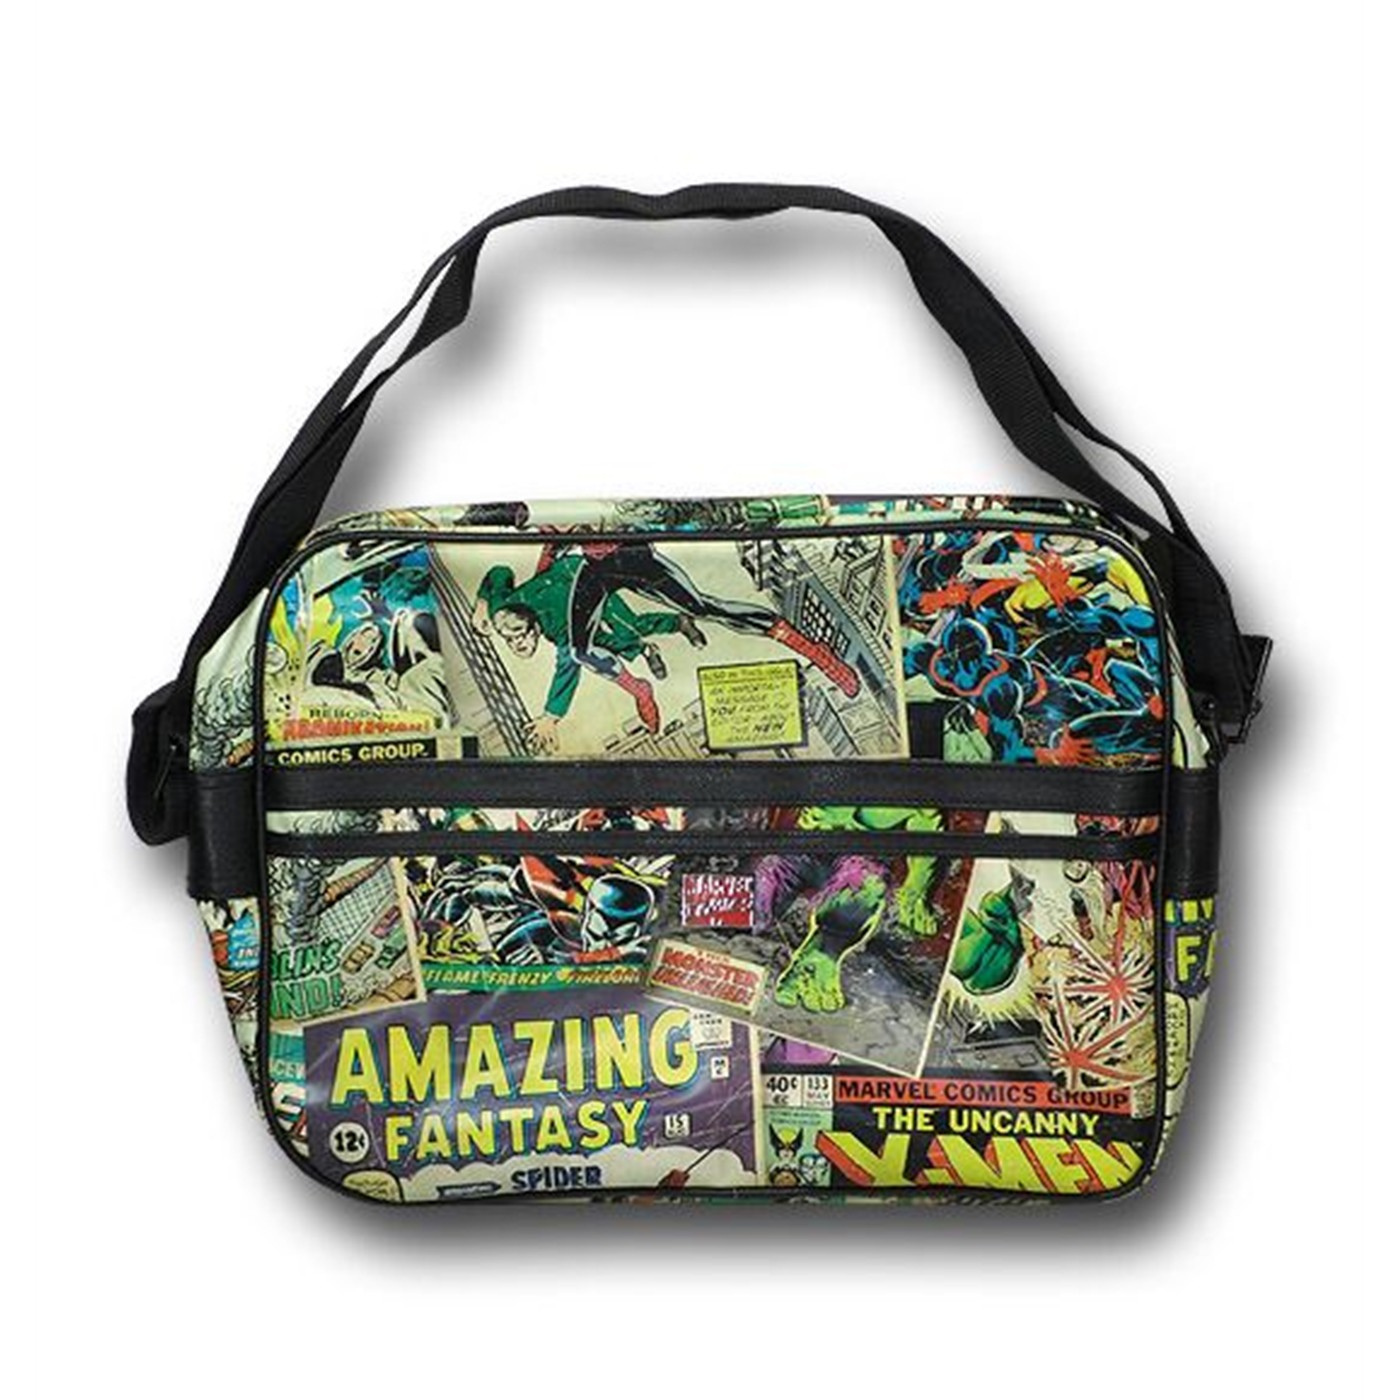 Marvel Classic Cover Mosaic Shoulder Book Bag